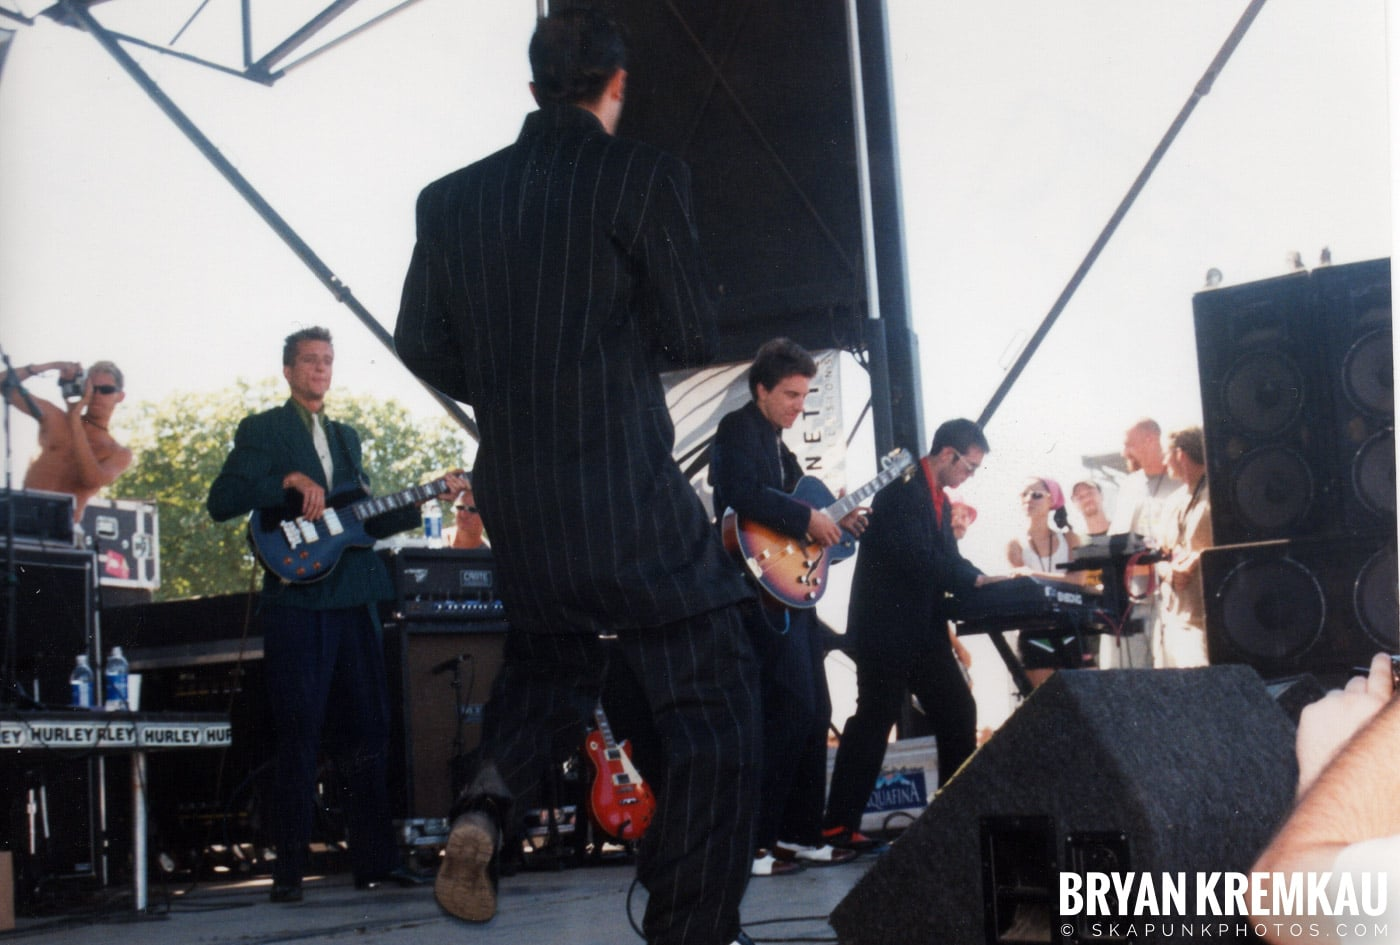 Cherry Poppin' Daddies @ Vans Warped Tour, Randall's Island, NYC - 8.1.98 (5)